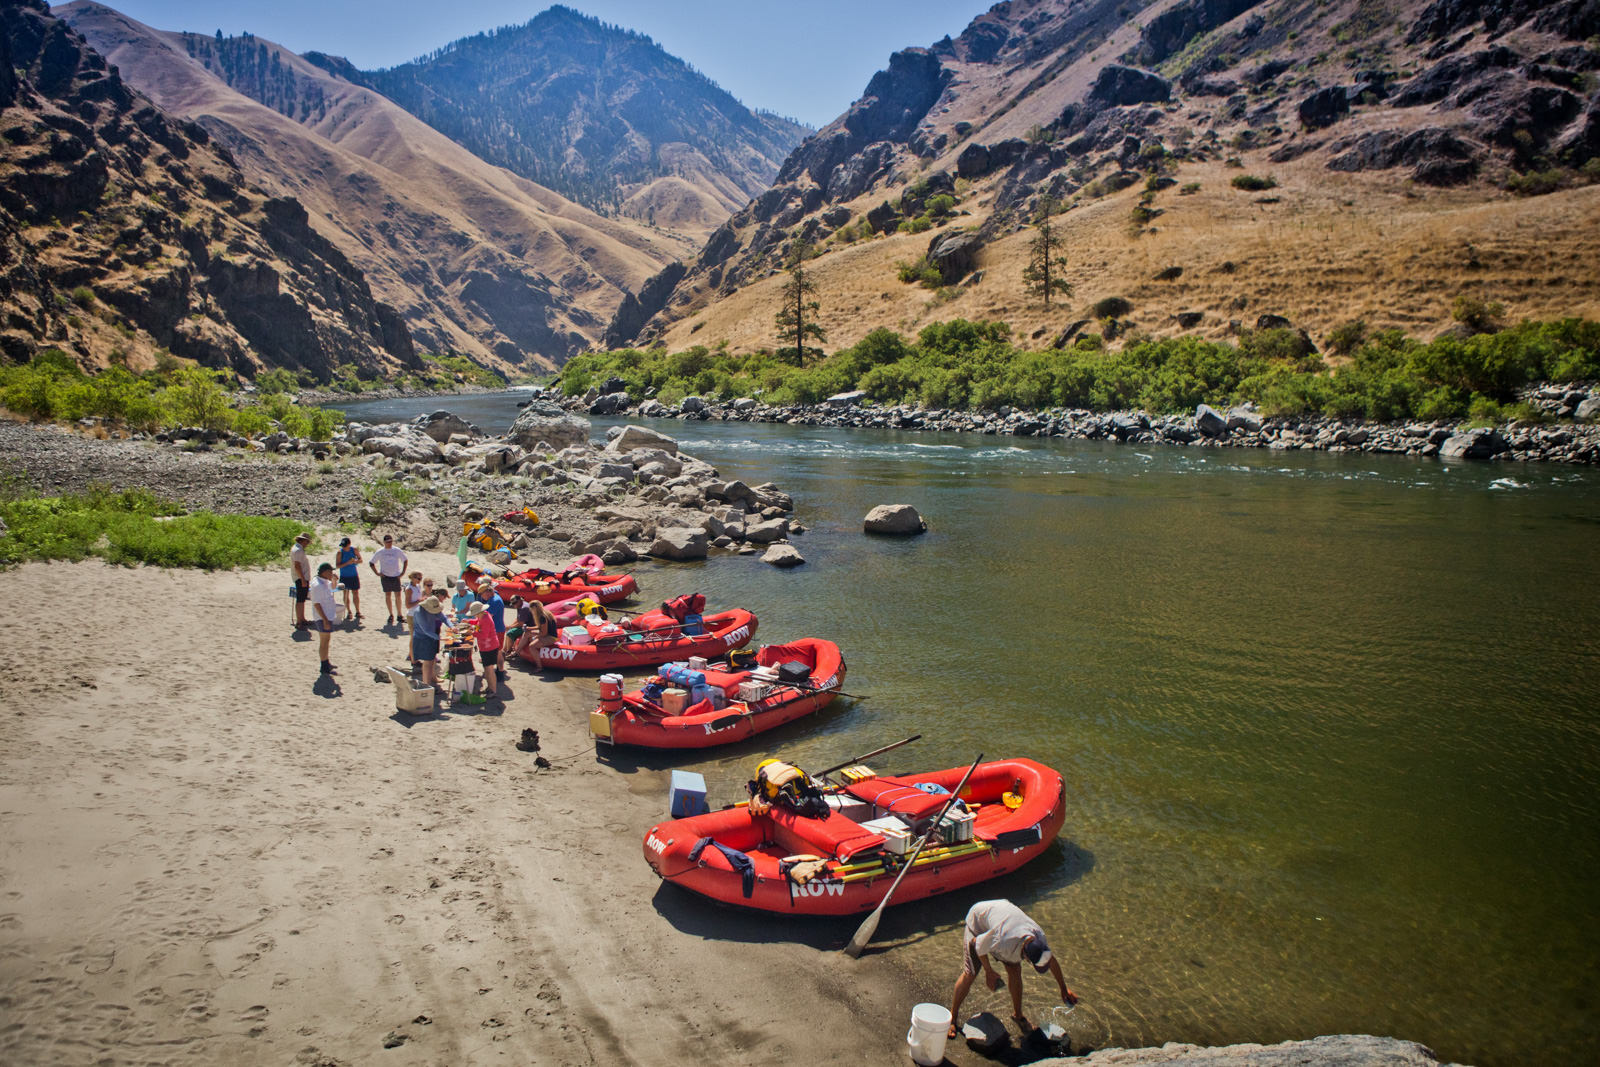 Pictures Of Hells Canyon Rafting On The Snake River